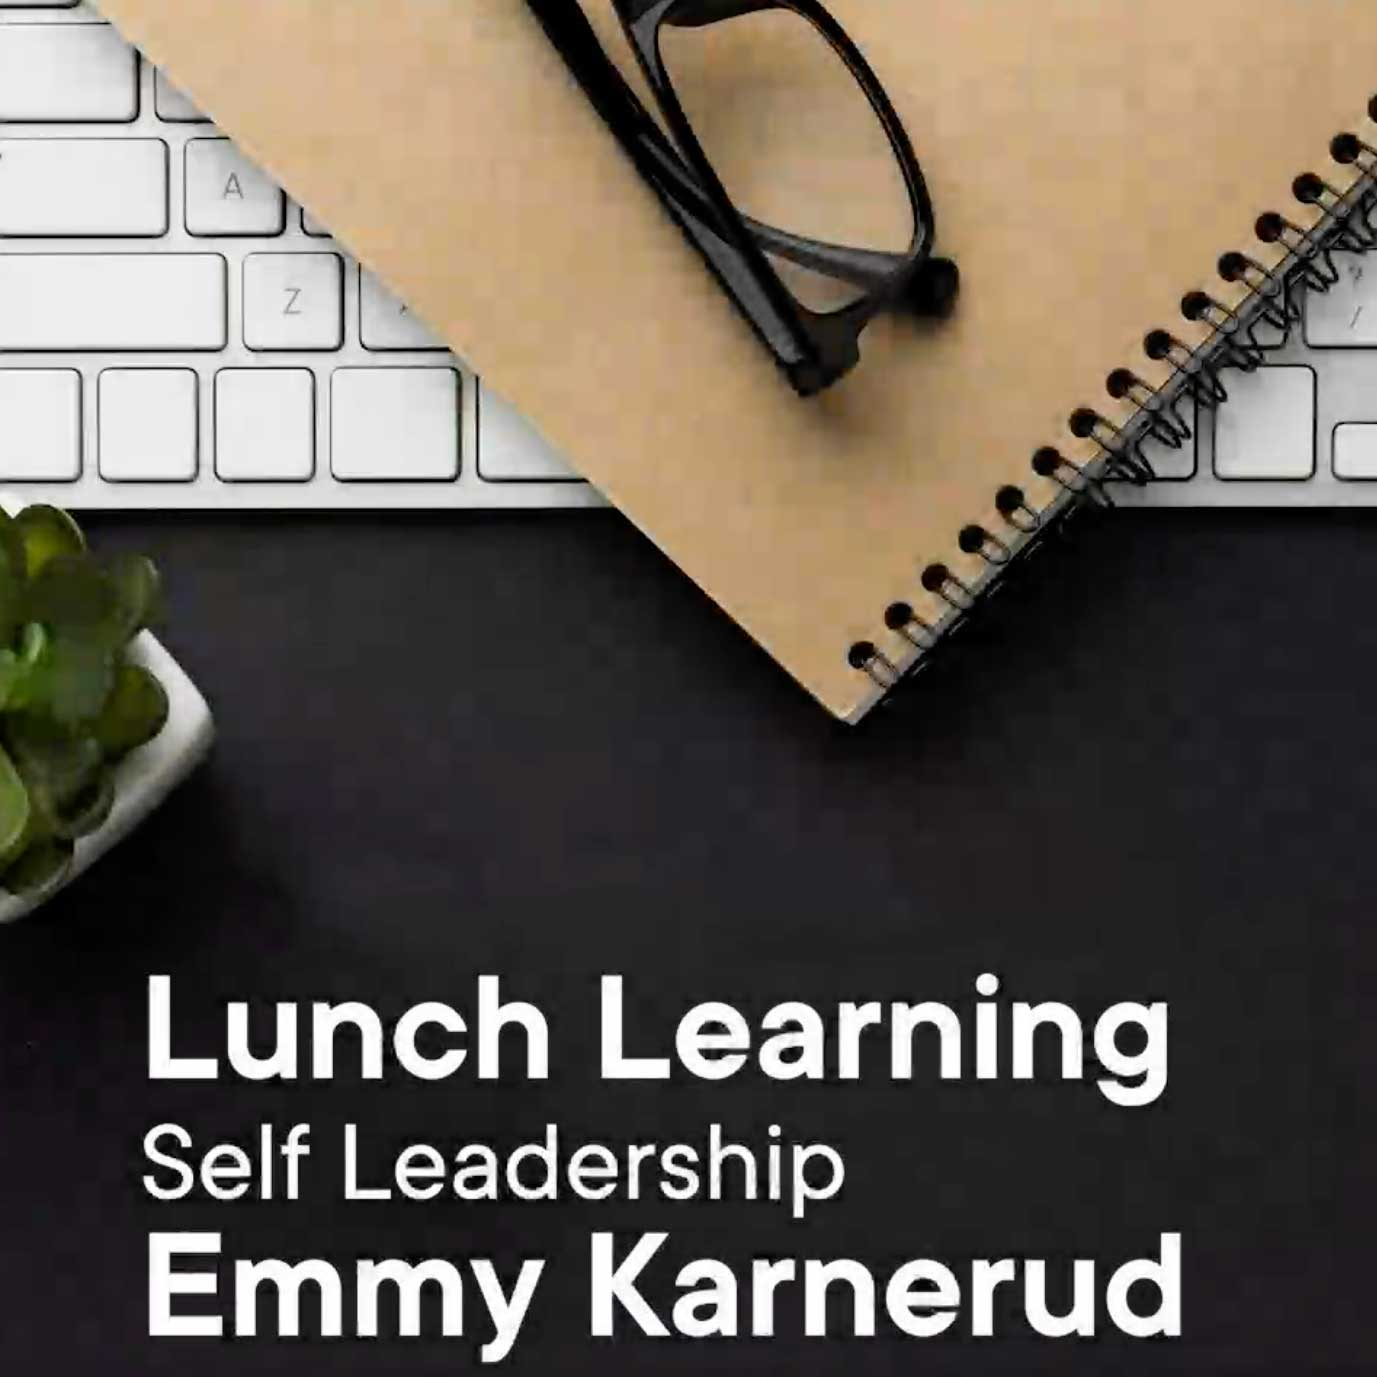 lunchlearning